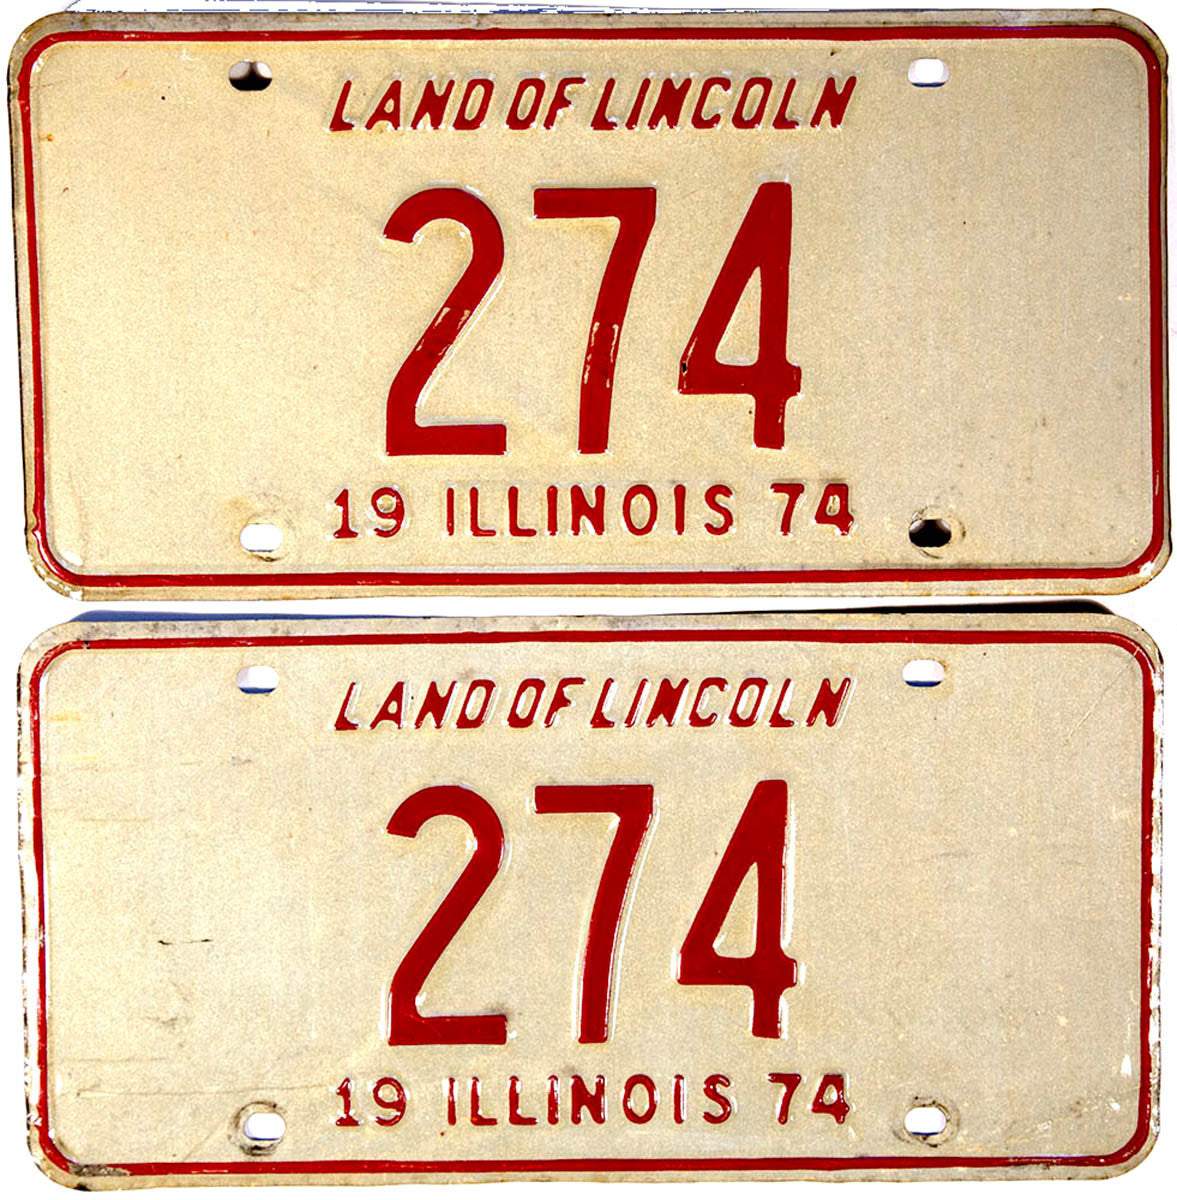 1974 Illinois License Plates